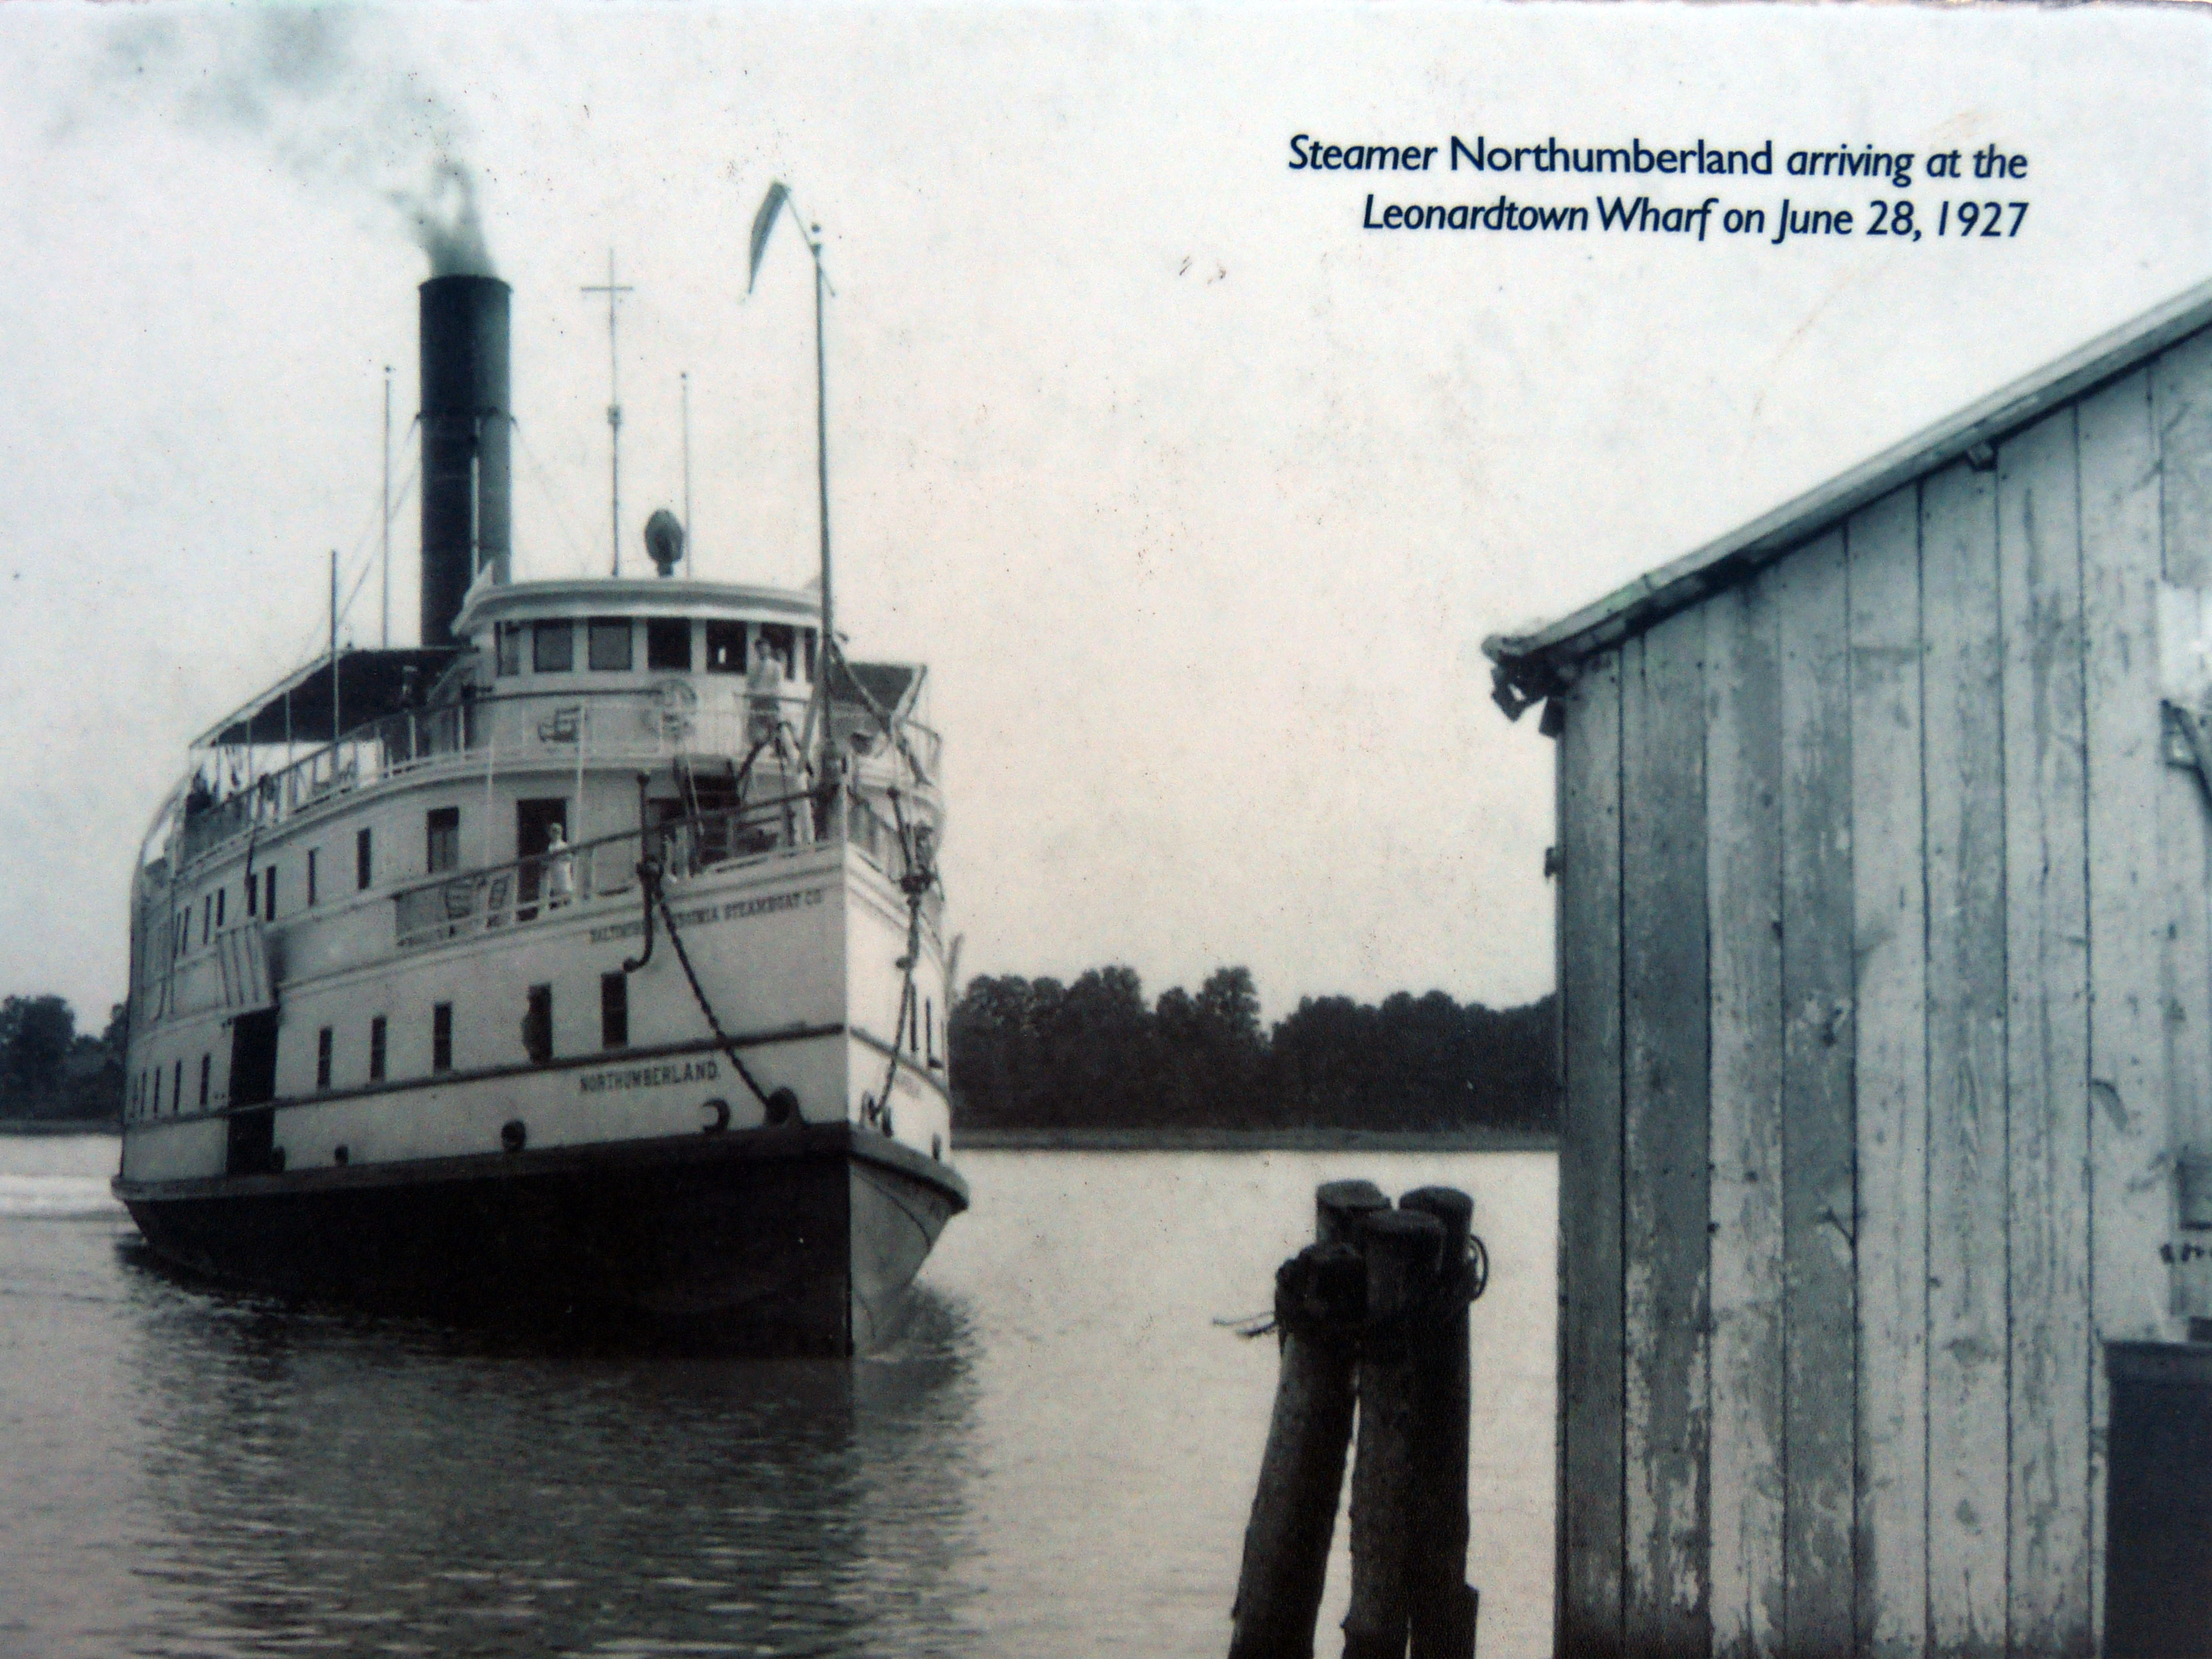 Steamer Northumberland arriving at the Leonardtown Wharf on June 28, 1927